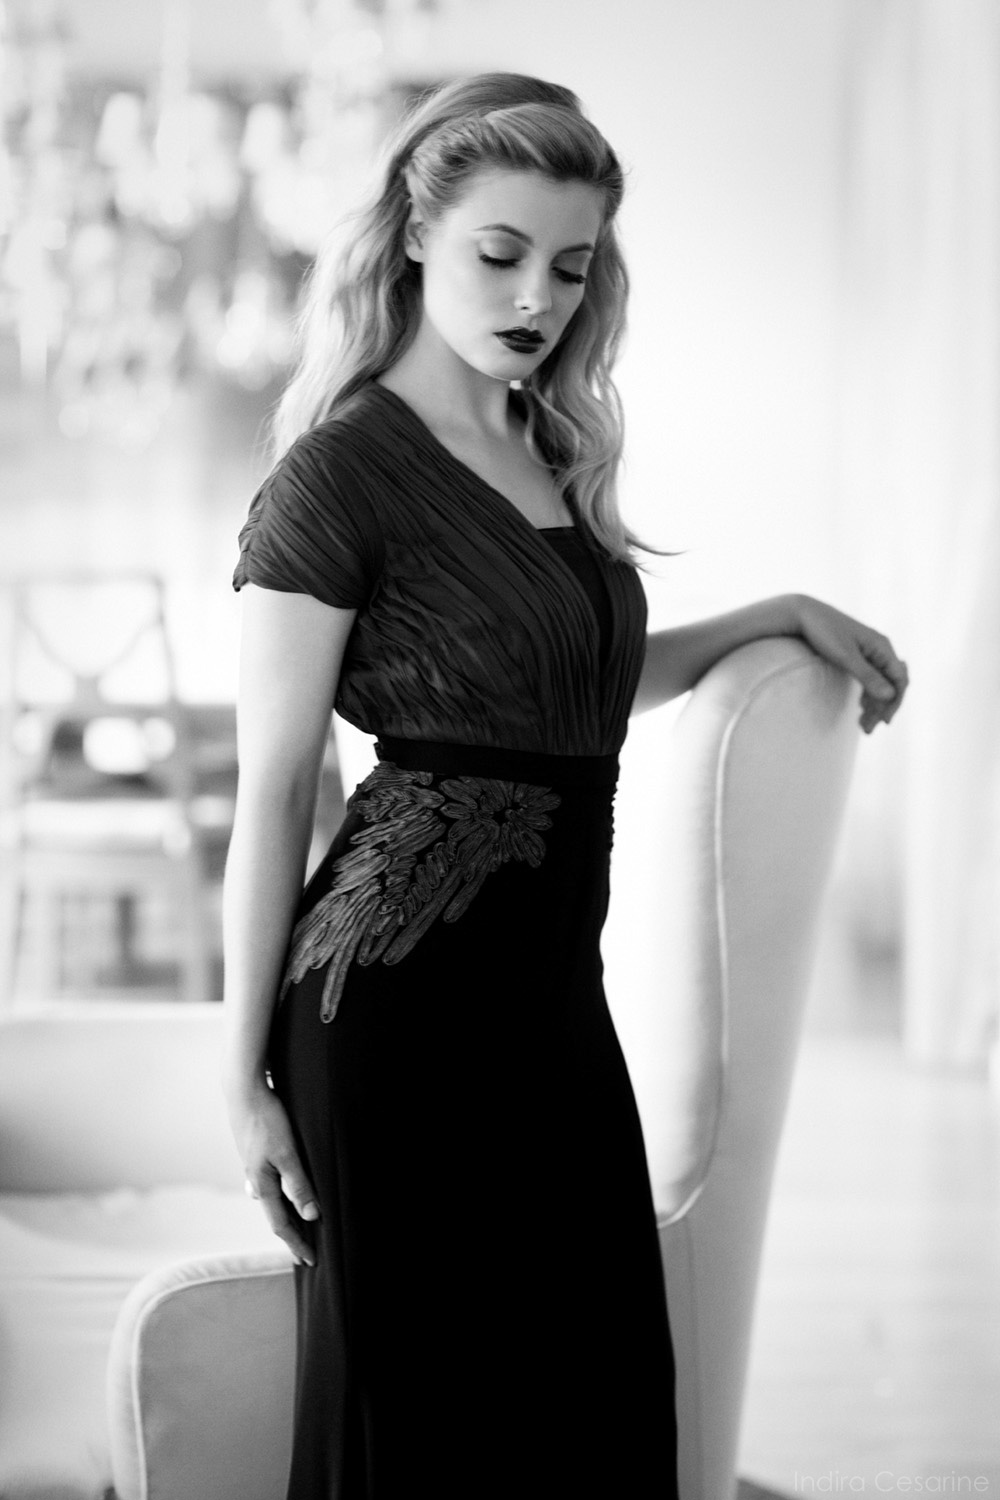 Gillian-Jacobs-Photography-by-Indira-Cesarine-007.jpg